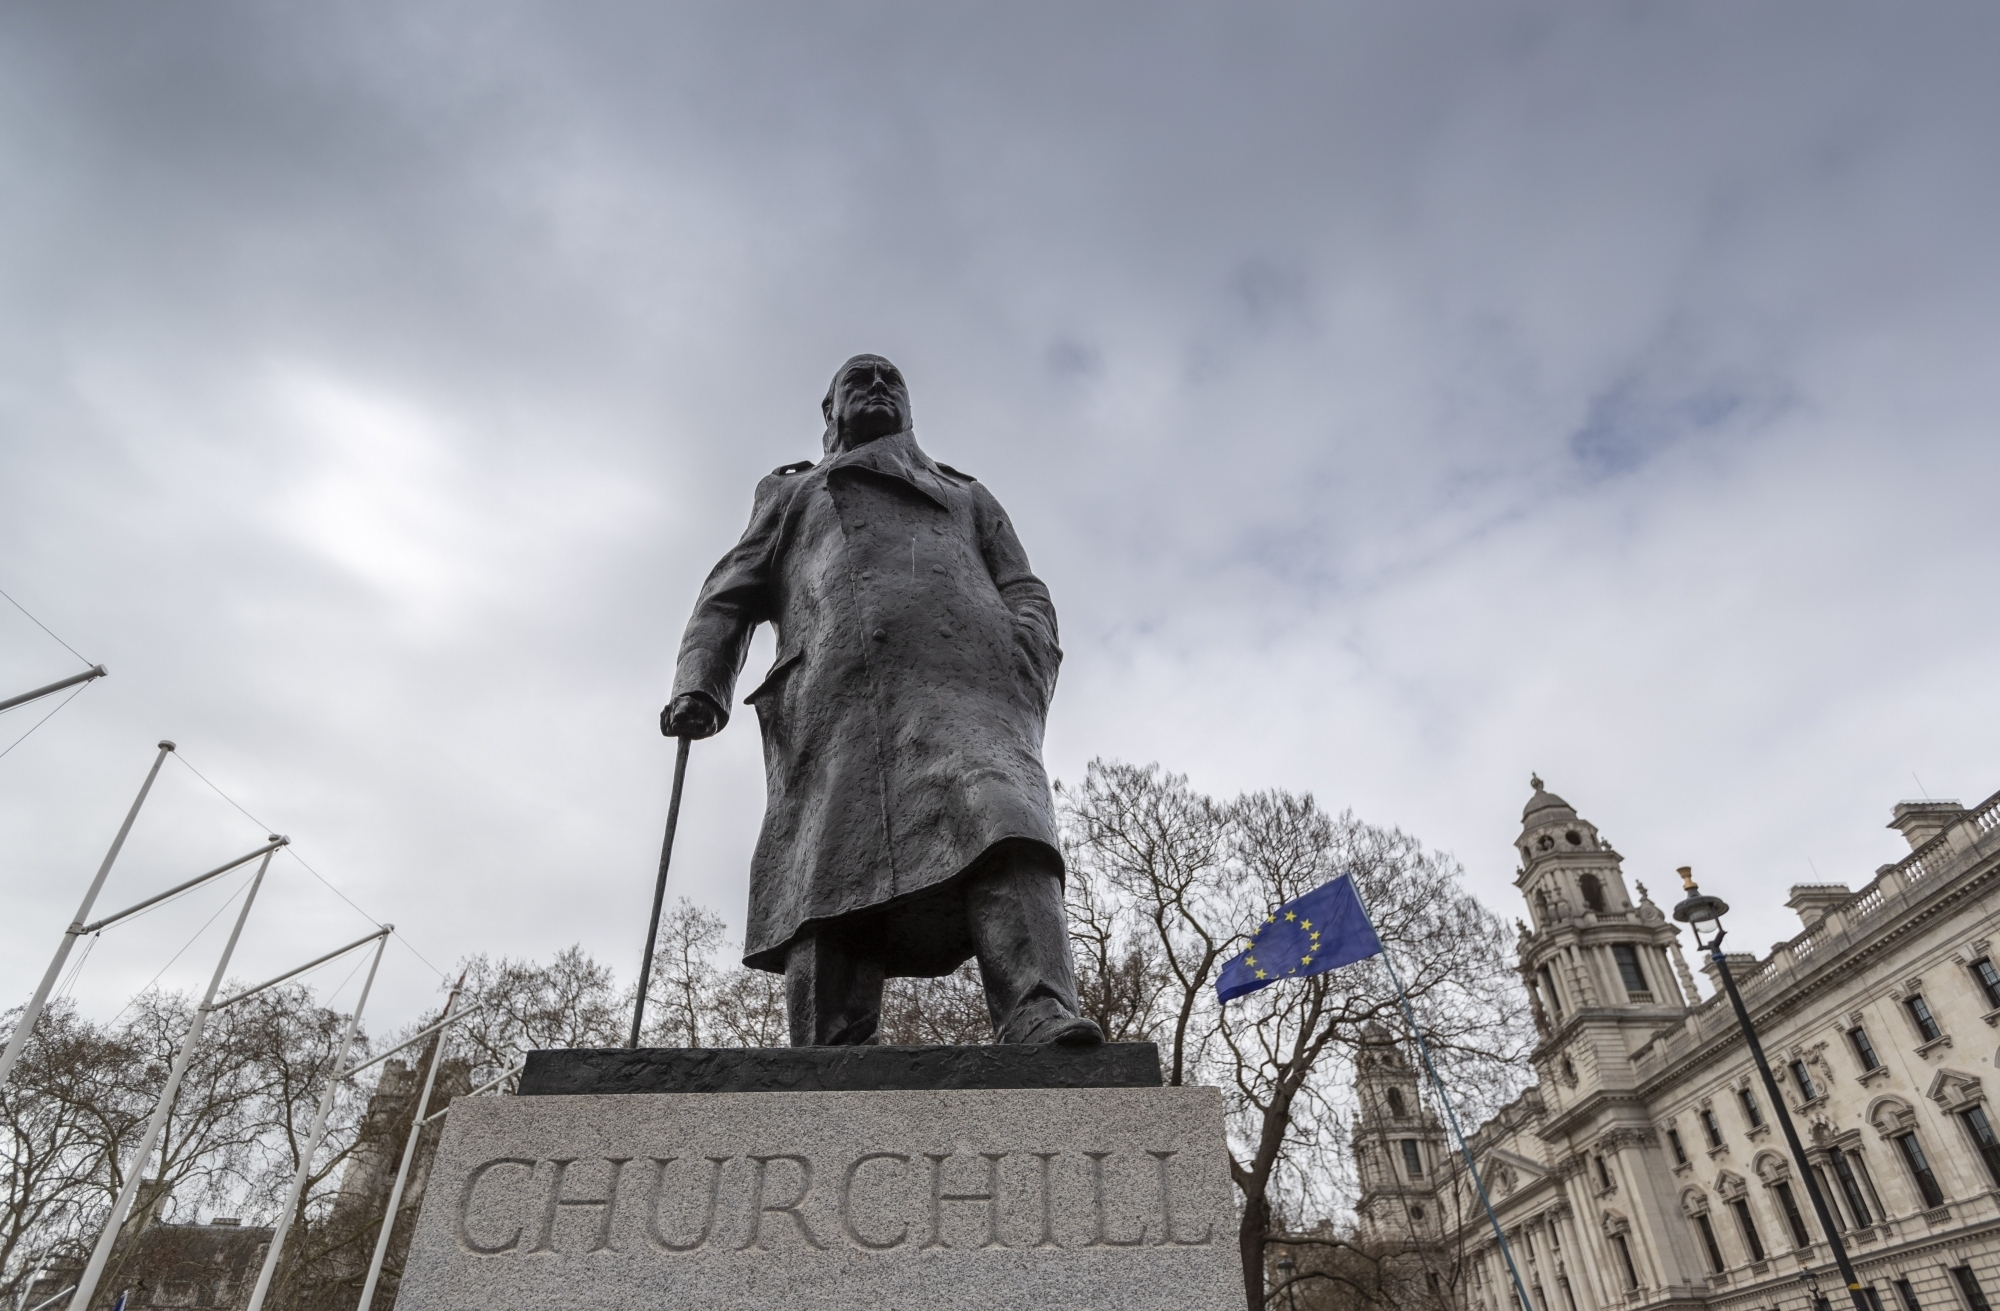 """LONDON, March 23, 2019 (Xinhua) -- An EU flag and the statue of Winston Churchill are seen during the """"Put it to the People"""" march in central London, Britain, on March 23, 2019. Hundreds of thousands of people on Saturday marched through central London calling for another referendum on Brexit as the country is caught by the Brexit impasse again. (Xinhua/Han Yan/IANS) by ."""